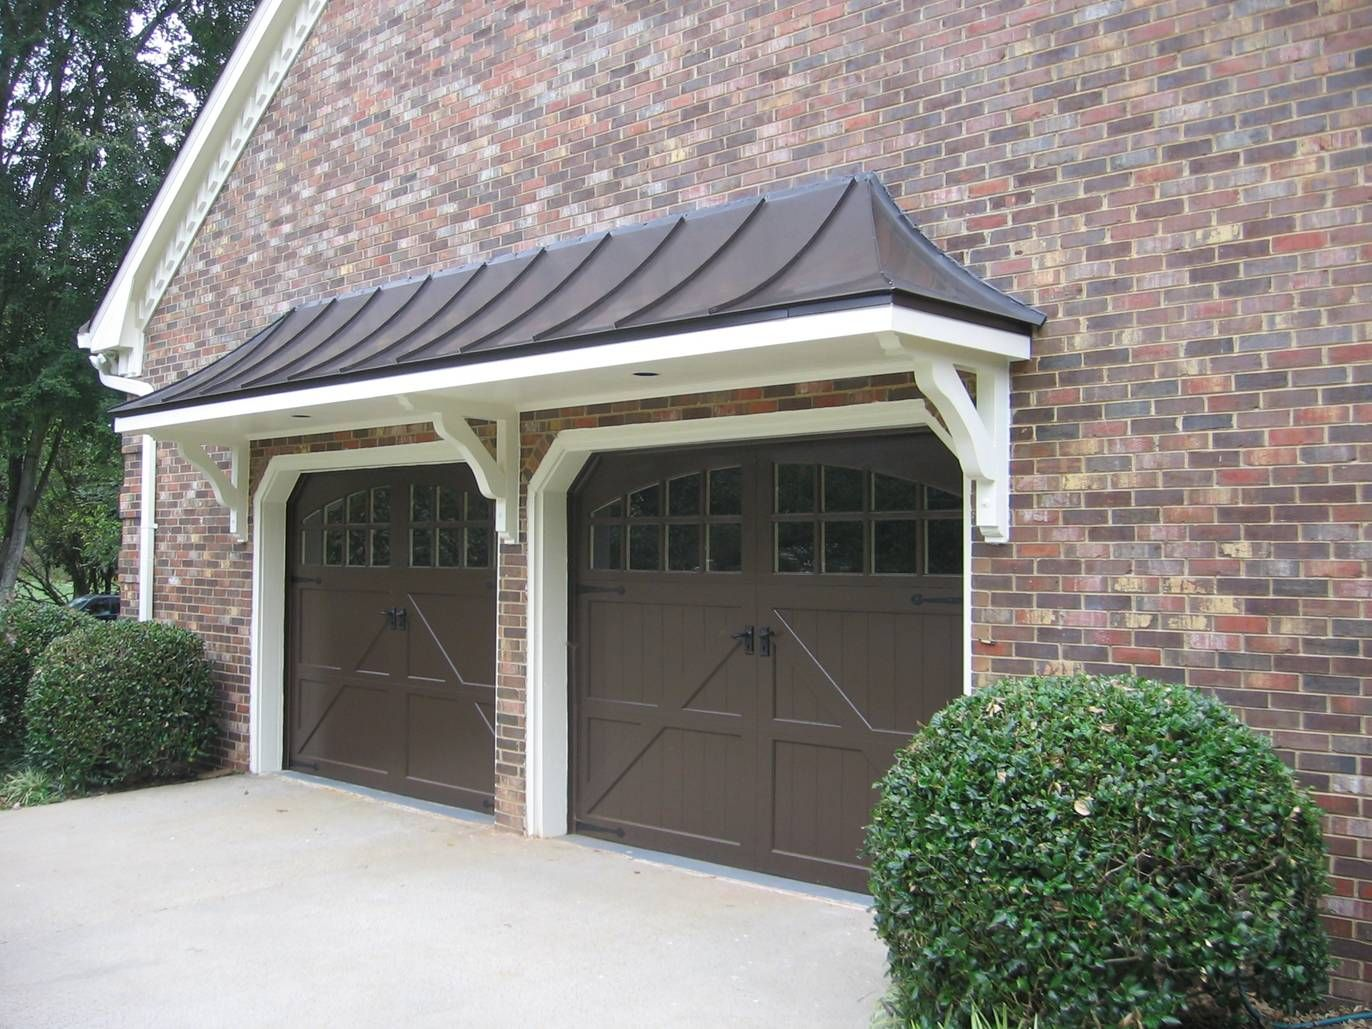 Metal roof bracket portico over double garage doors for Garage roof styles